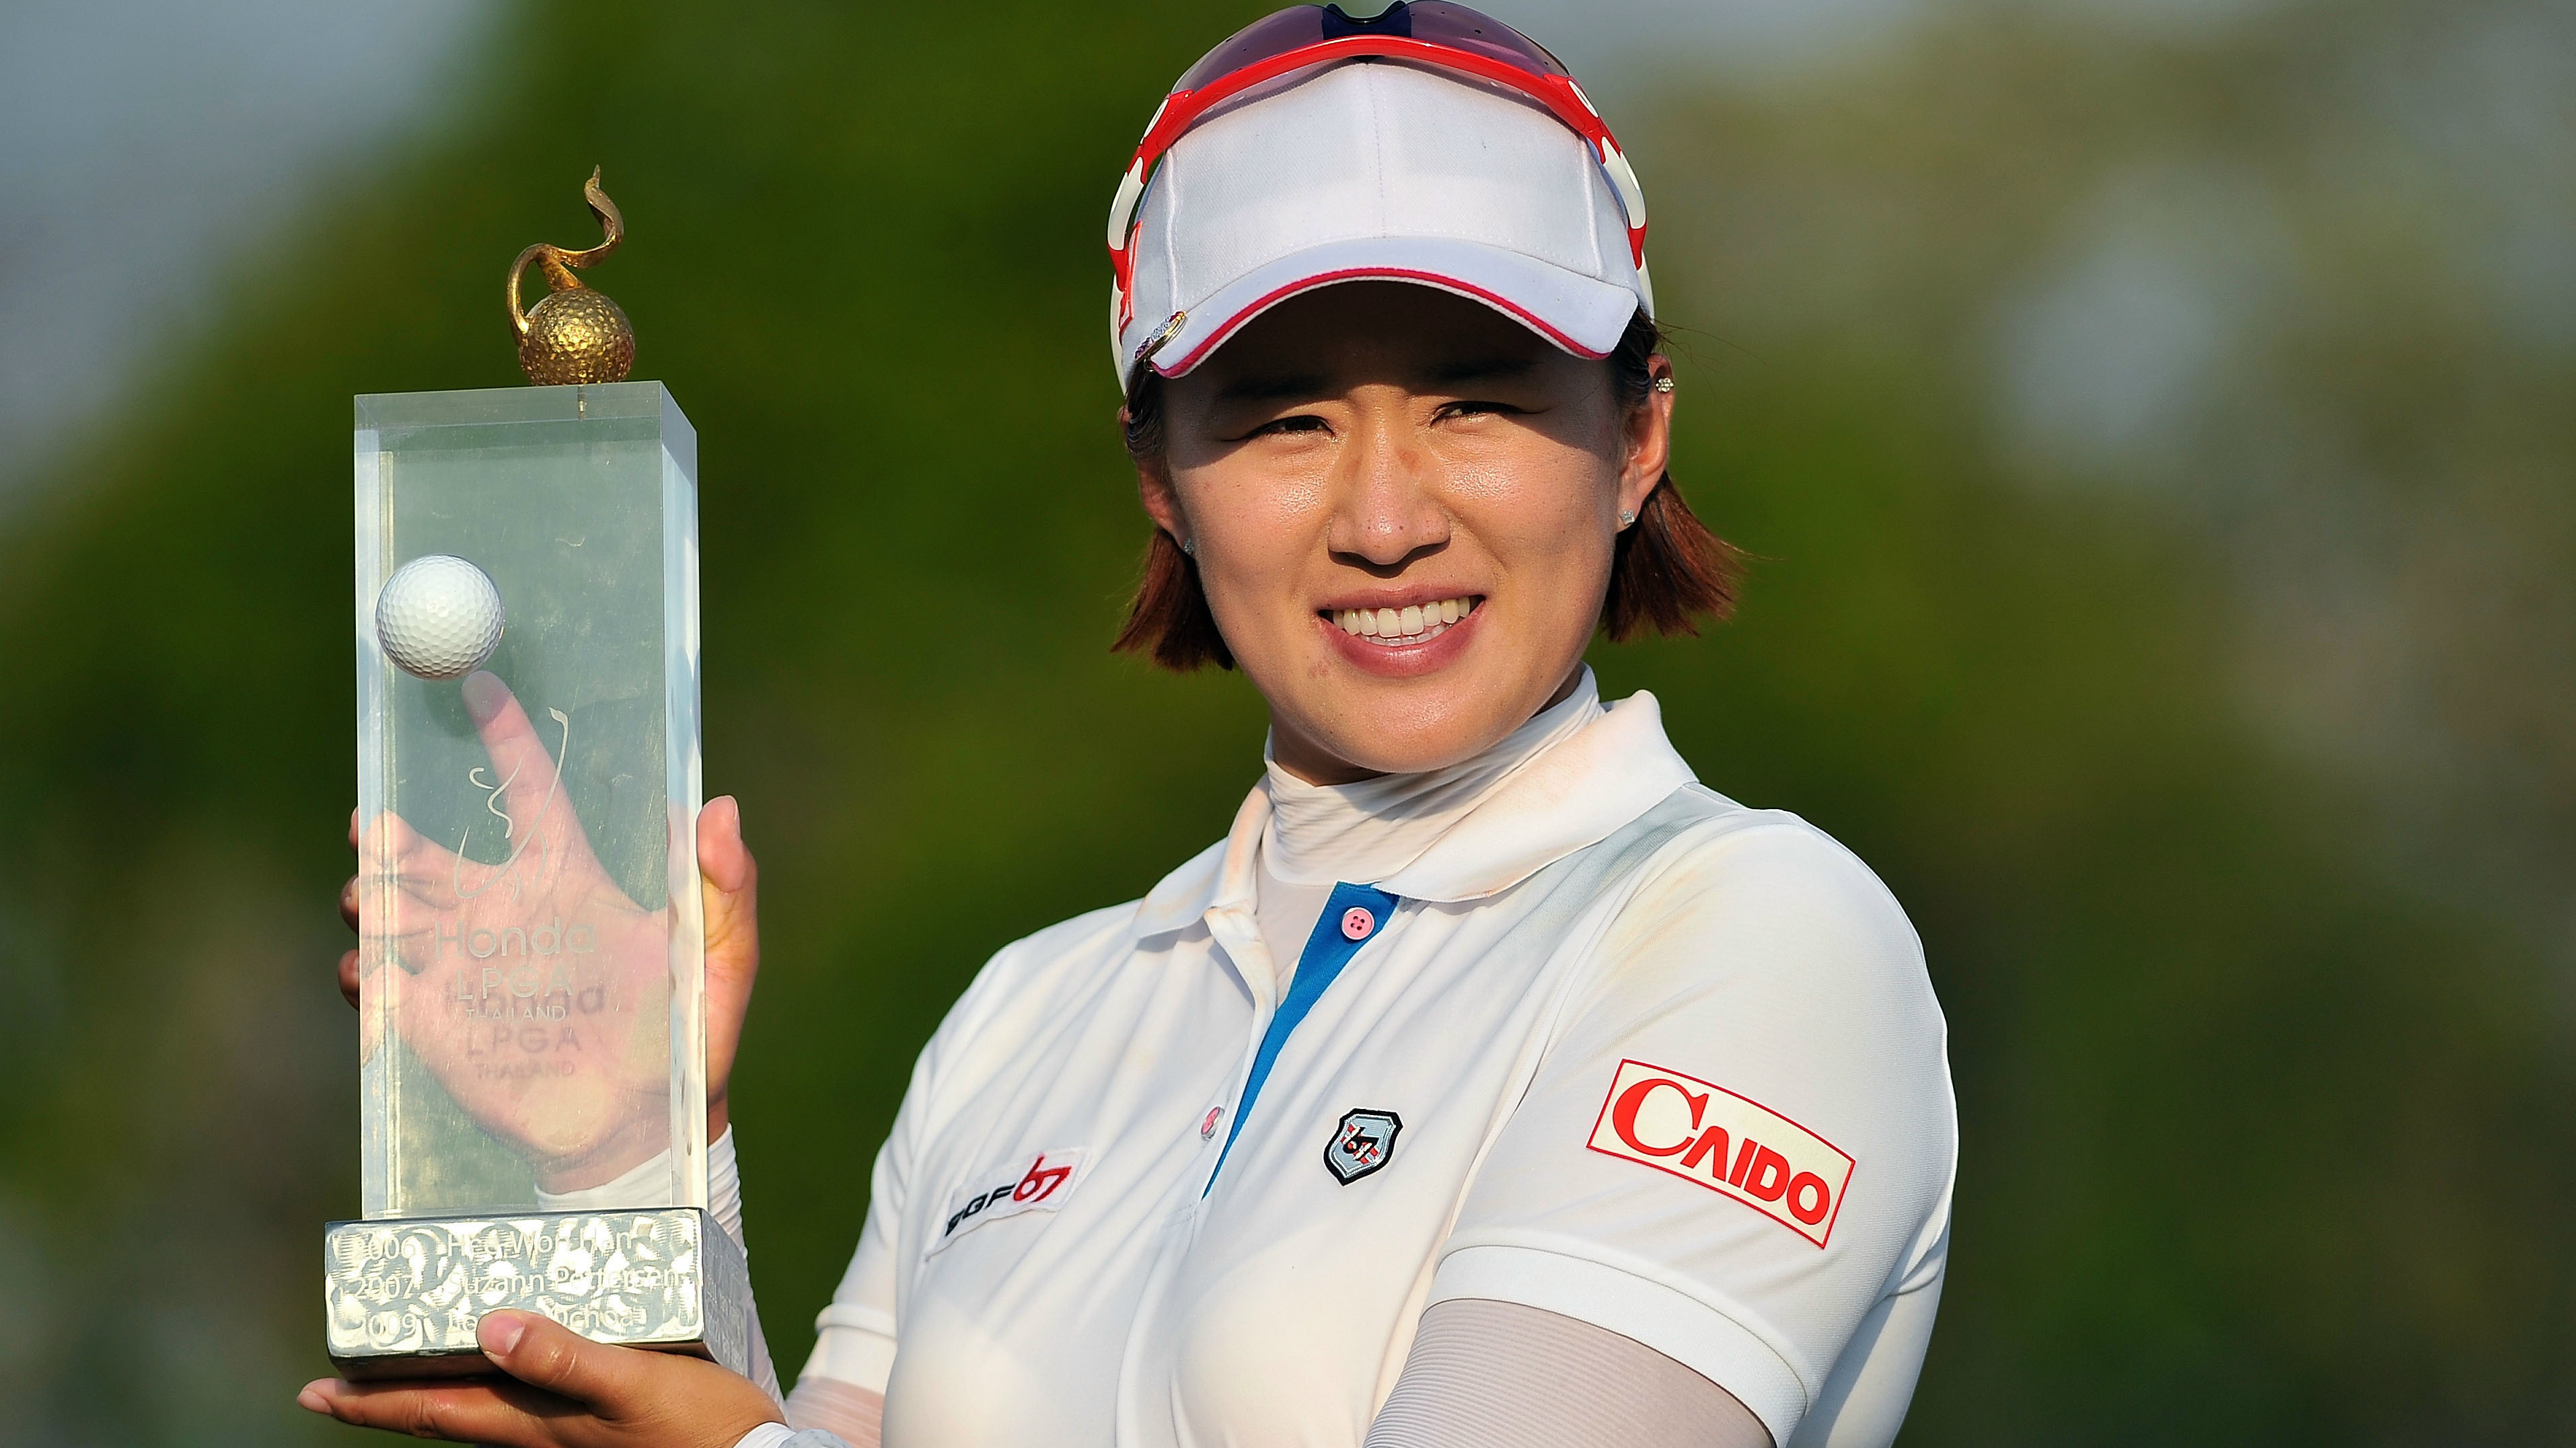 2015 honda lpga thailand winners circle infographic amy